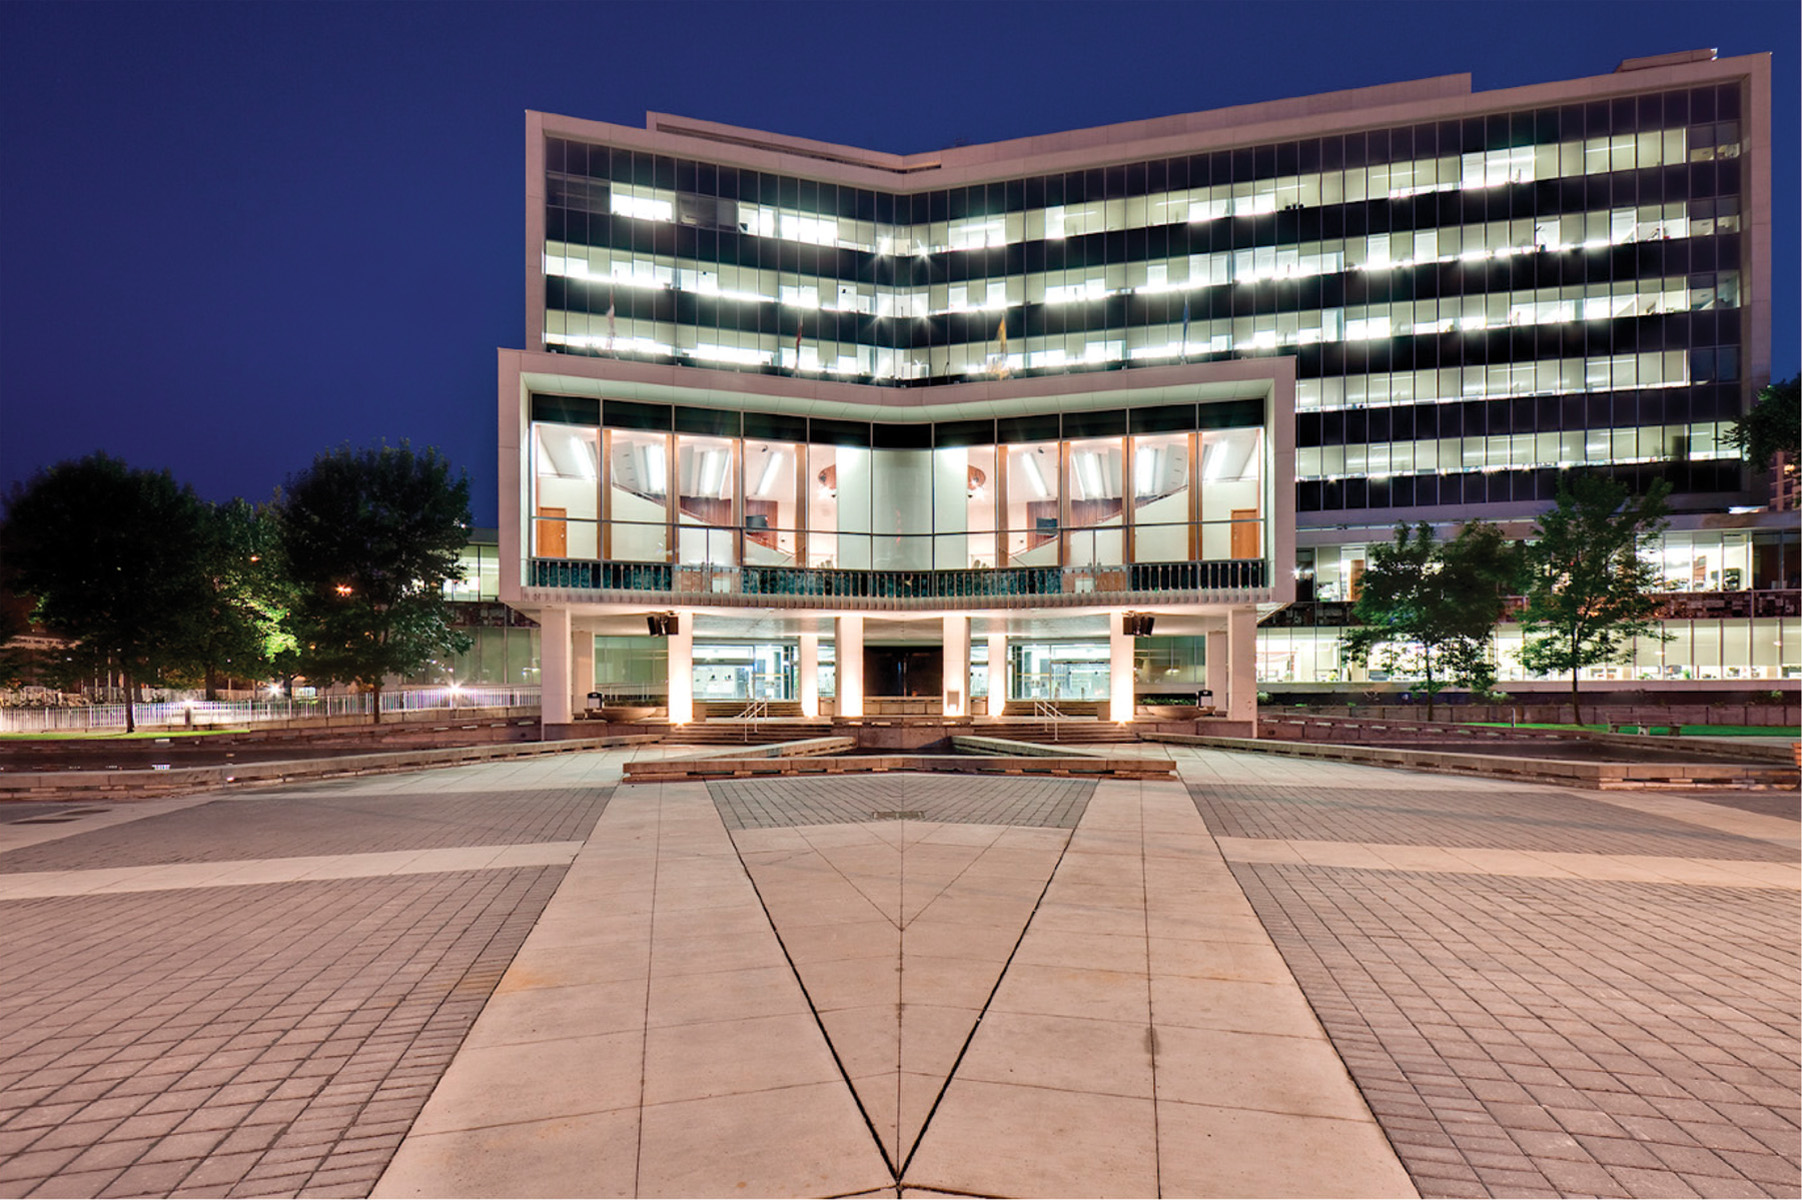 View of illuminated front entrance and building from open courtyard at night